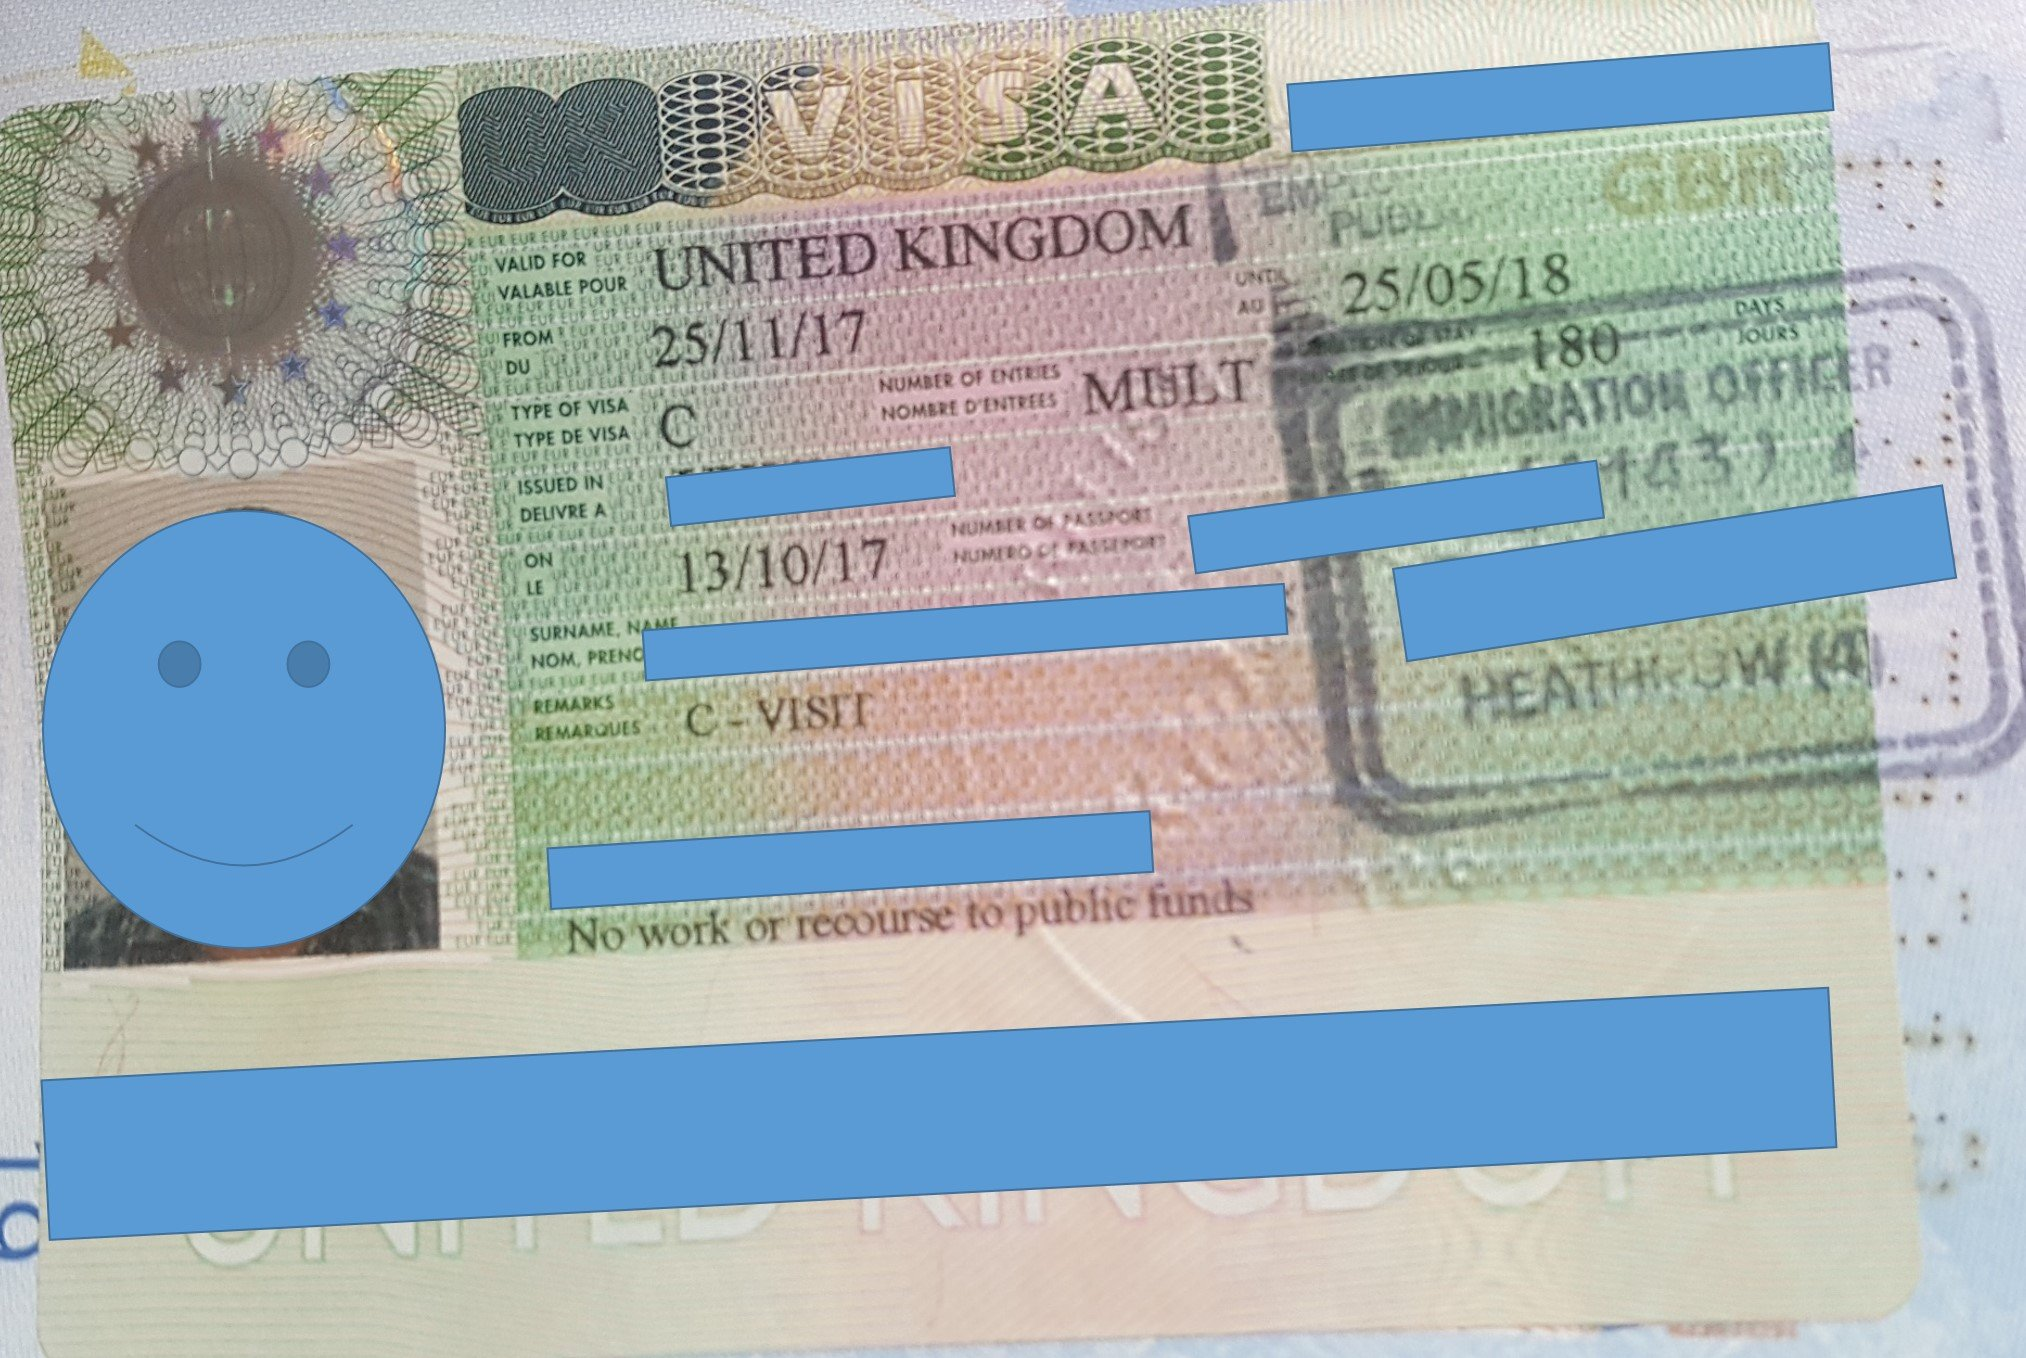 UK Visit Visa Guide for Pinoys – Doctor OffDuty Travel Blog